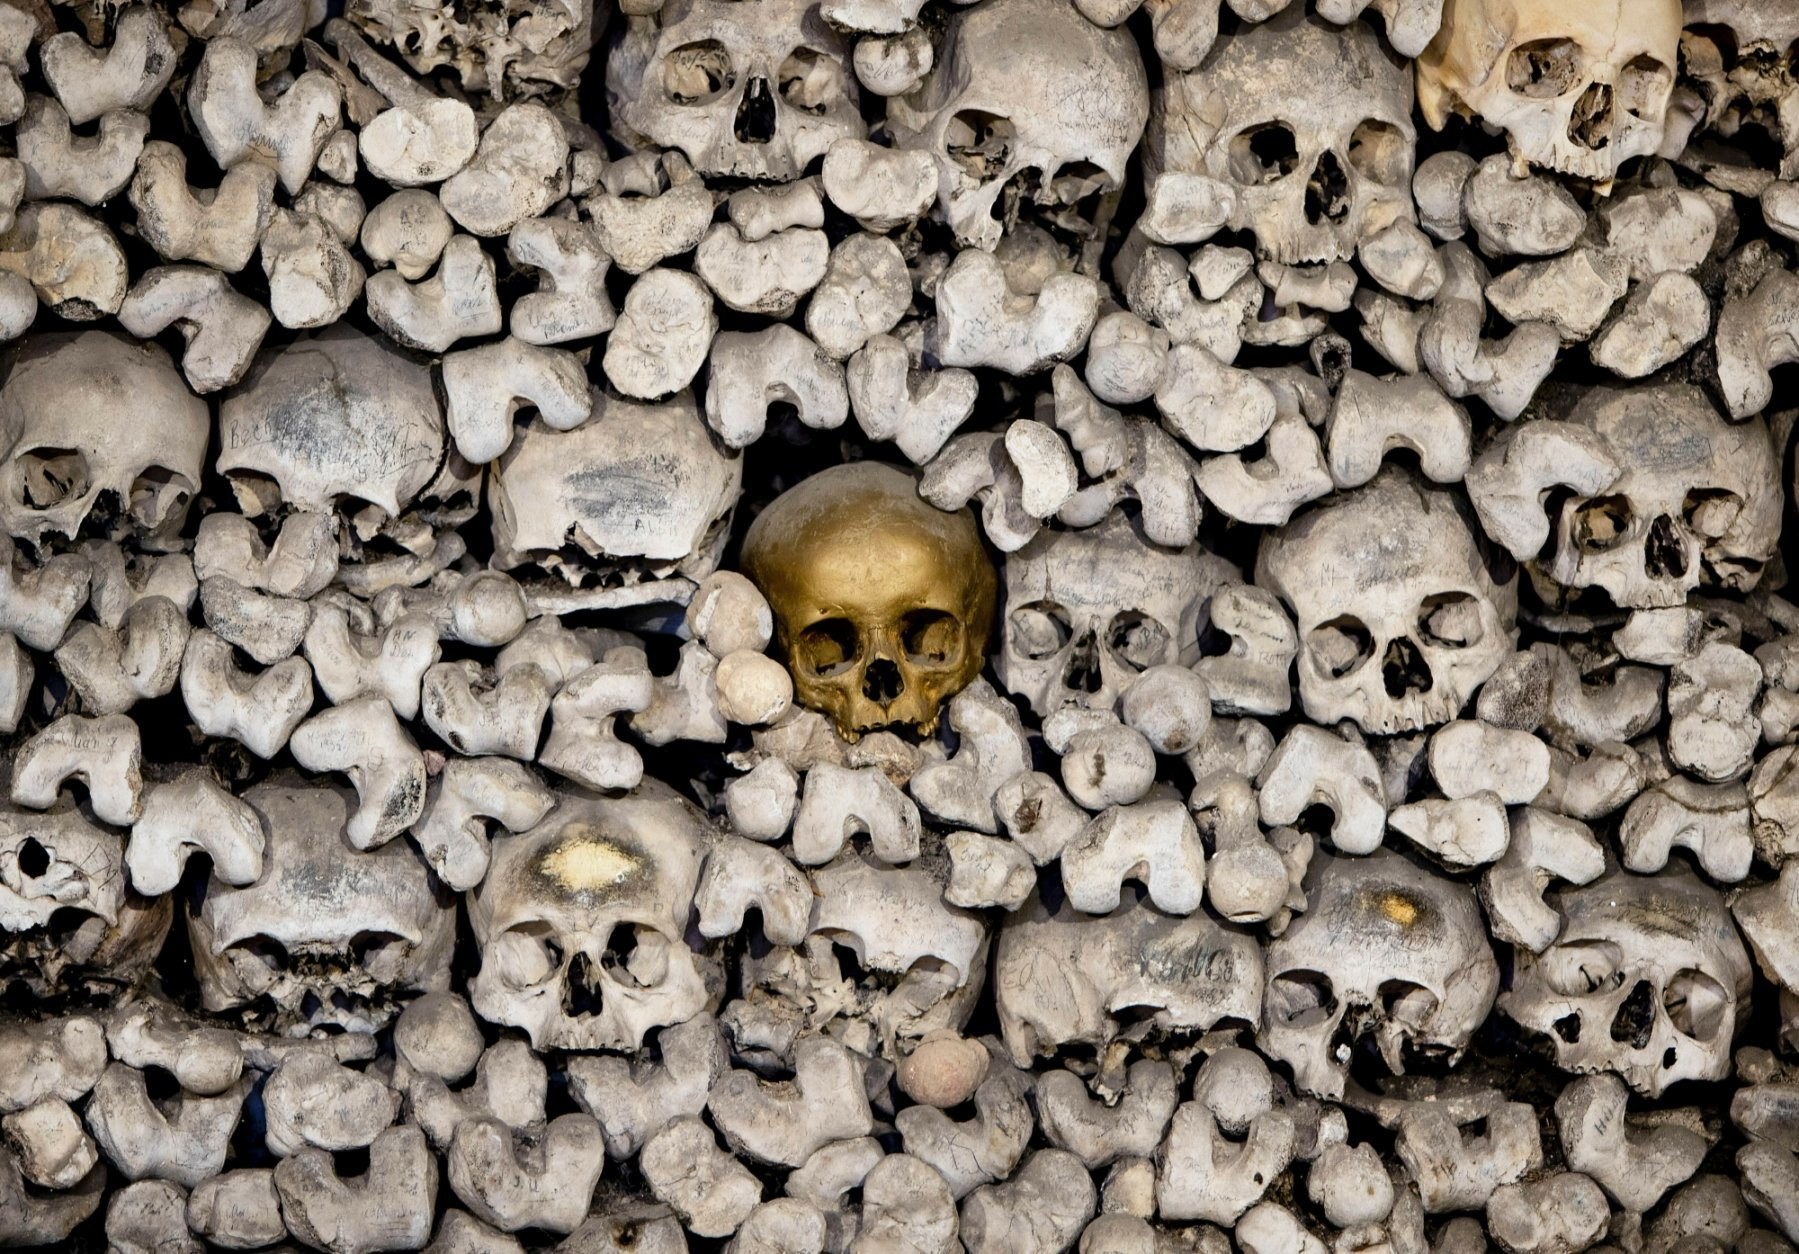 A skull painted gold stands out from amongst the 20,000 skeletons stored in the church ossuary of the Katharinenkirche in Oppenheim some 50 kilometers (30 miles) south of Frankfurt, Germany, Monday, Jan. 7, 2019. (AP Photo/Michael Probst)